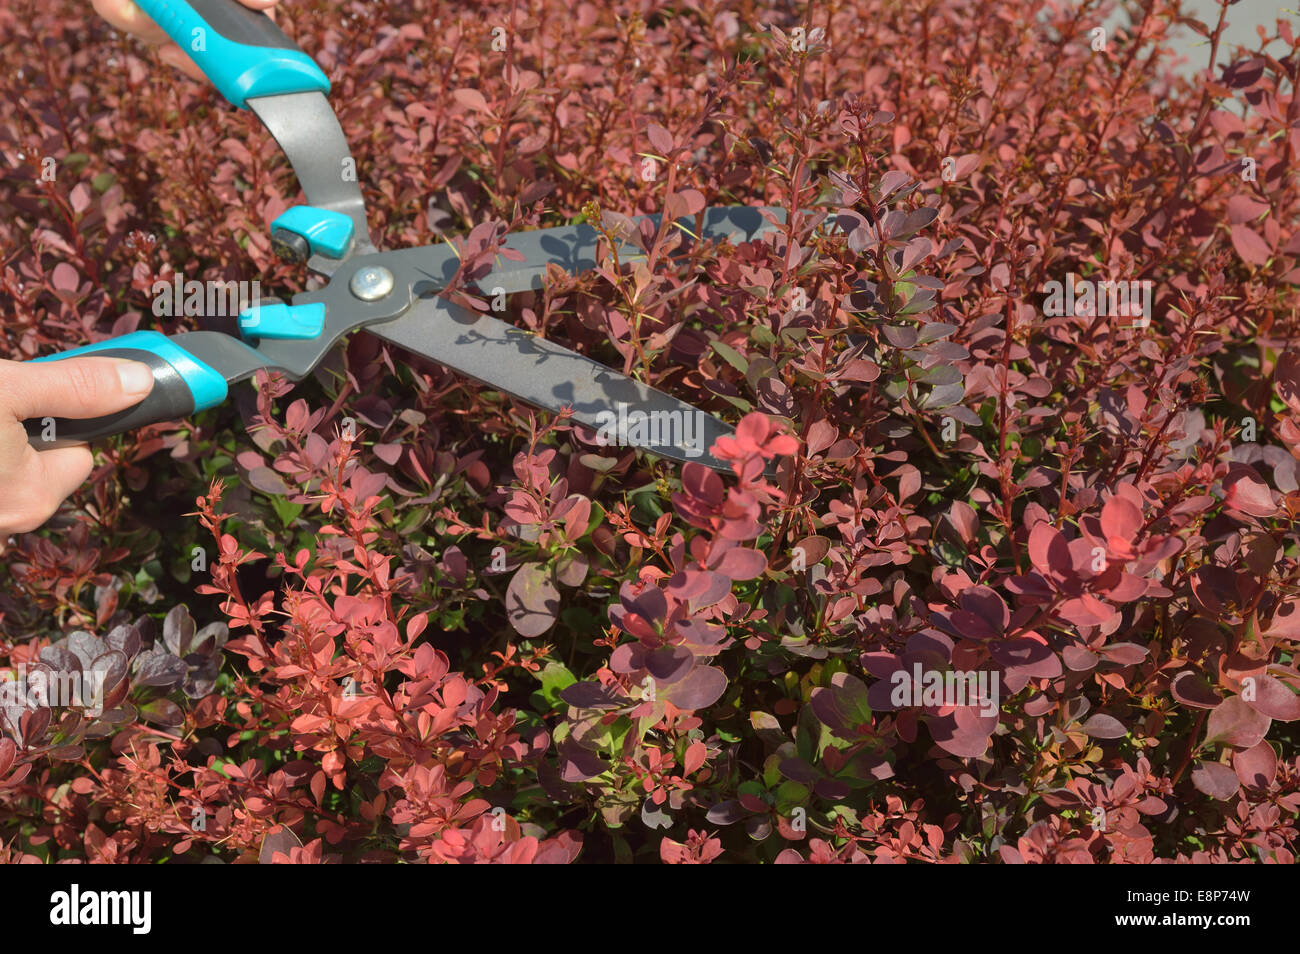 Manual trimming shrubbery of red Berberis by hedge clippers or secateurs. - Stock Image